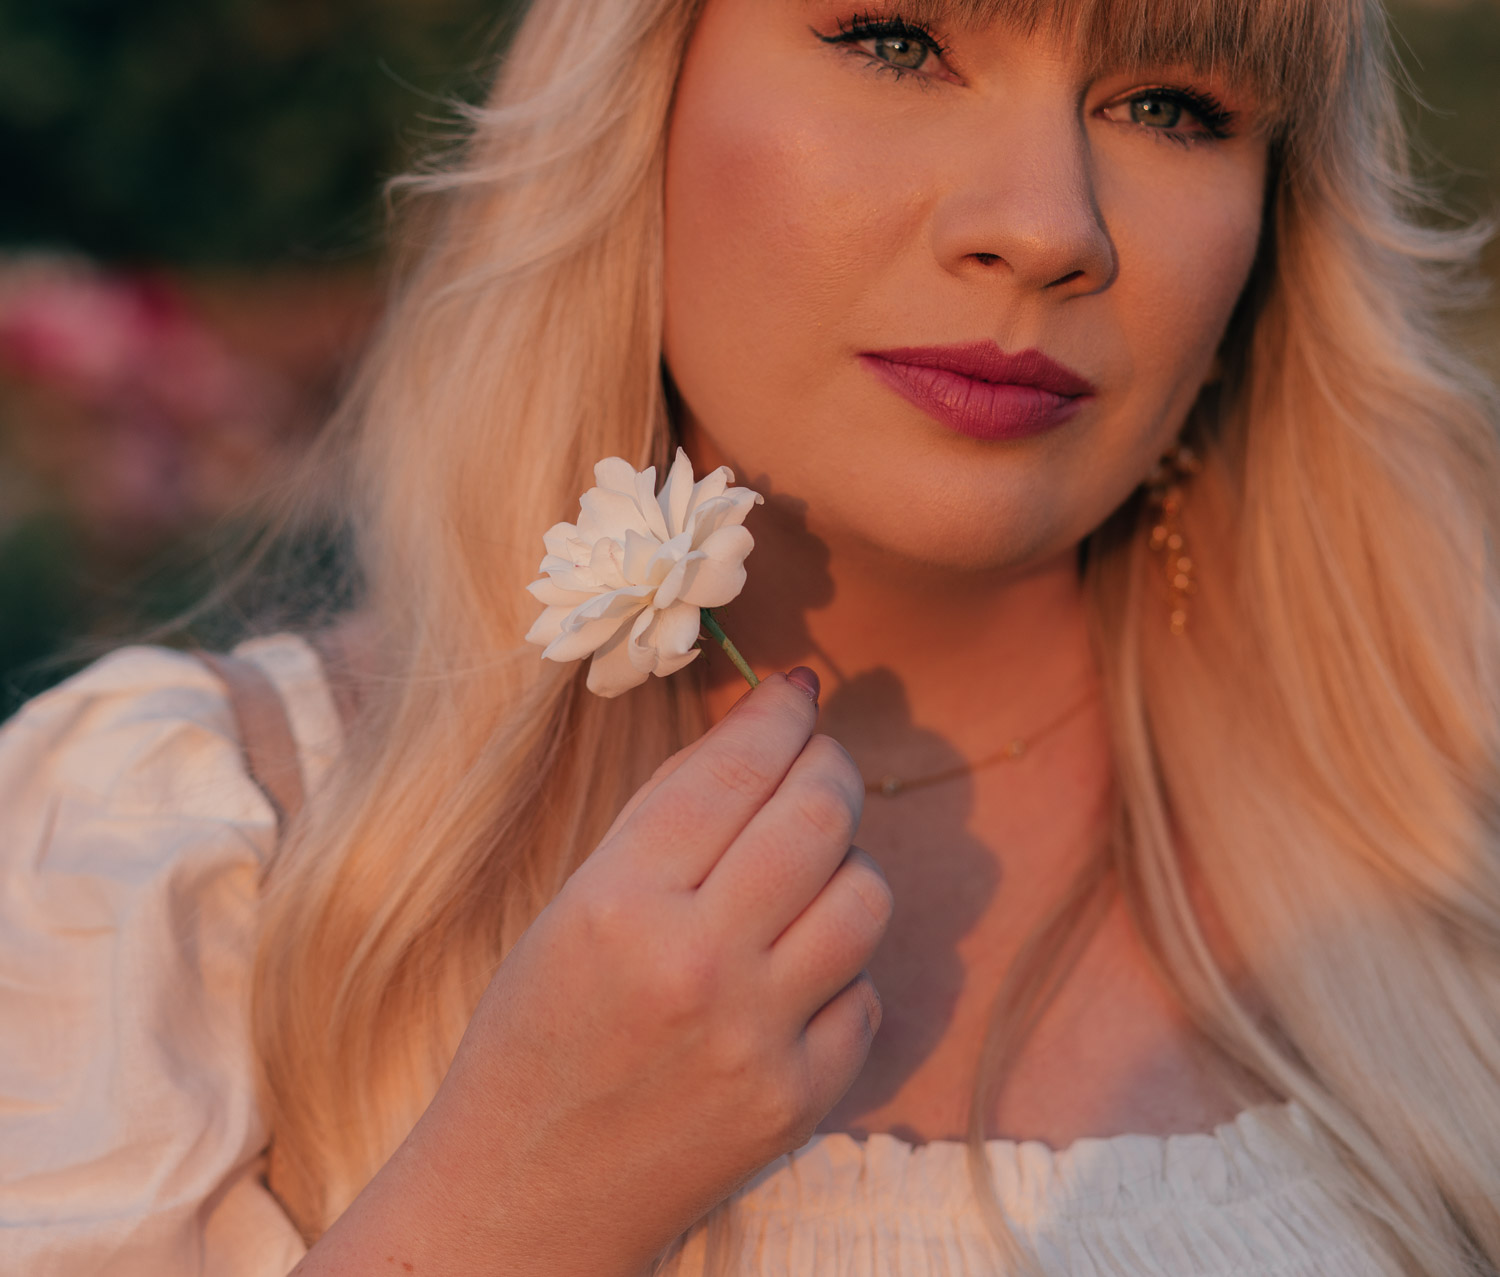 Feminine Fashion Blogger Elizabeth Hugen of Lizzie in Lace shares a cottagecore outfit idea including this white puff sleeve dress from Chicwish, dainty gold jewelry and feminine makeup look